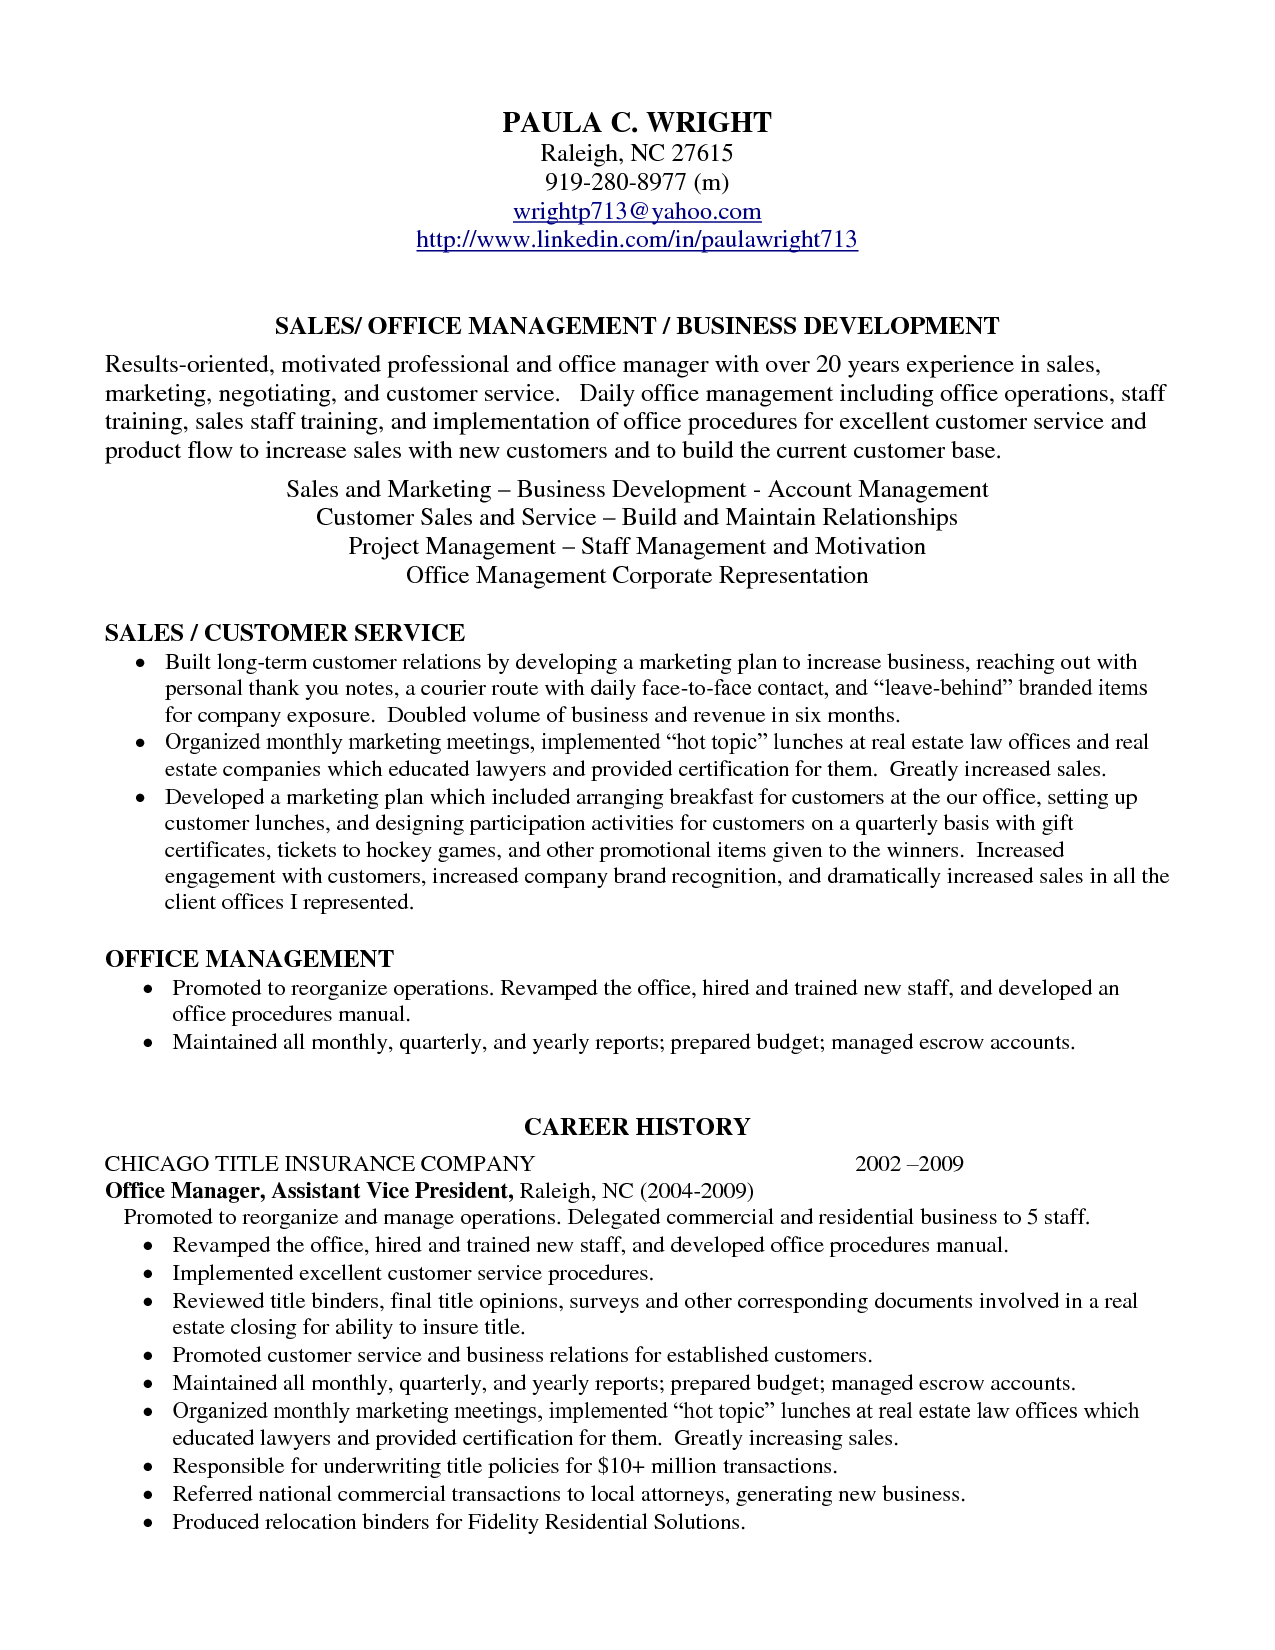 Resume Professional Profile example of profile on resume profile summary examples resume professional profile on nursing resume professional profile Professional Profile Resume Examples Resume Professional Profile Examples Resumes Letters Etc Pinterest Professional Resume Examples